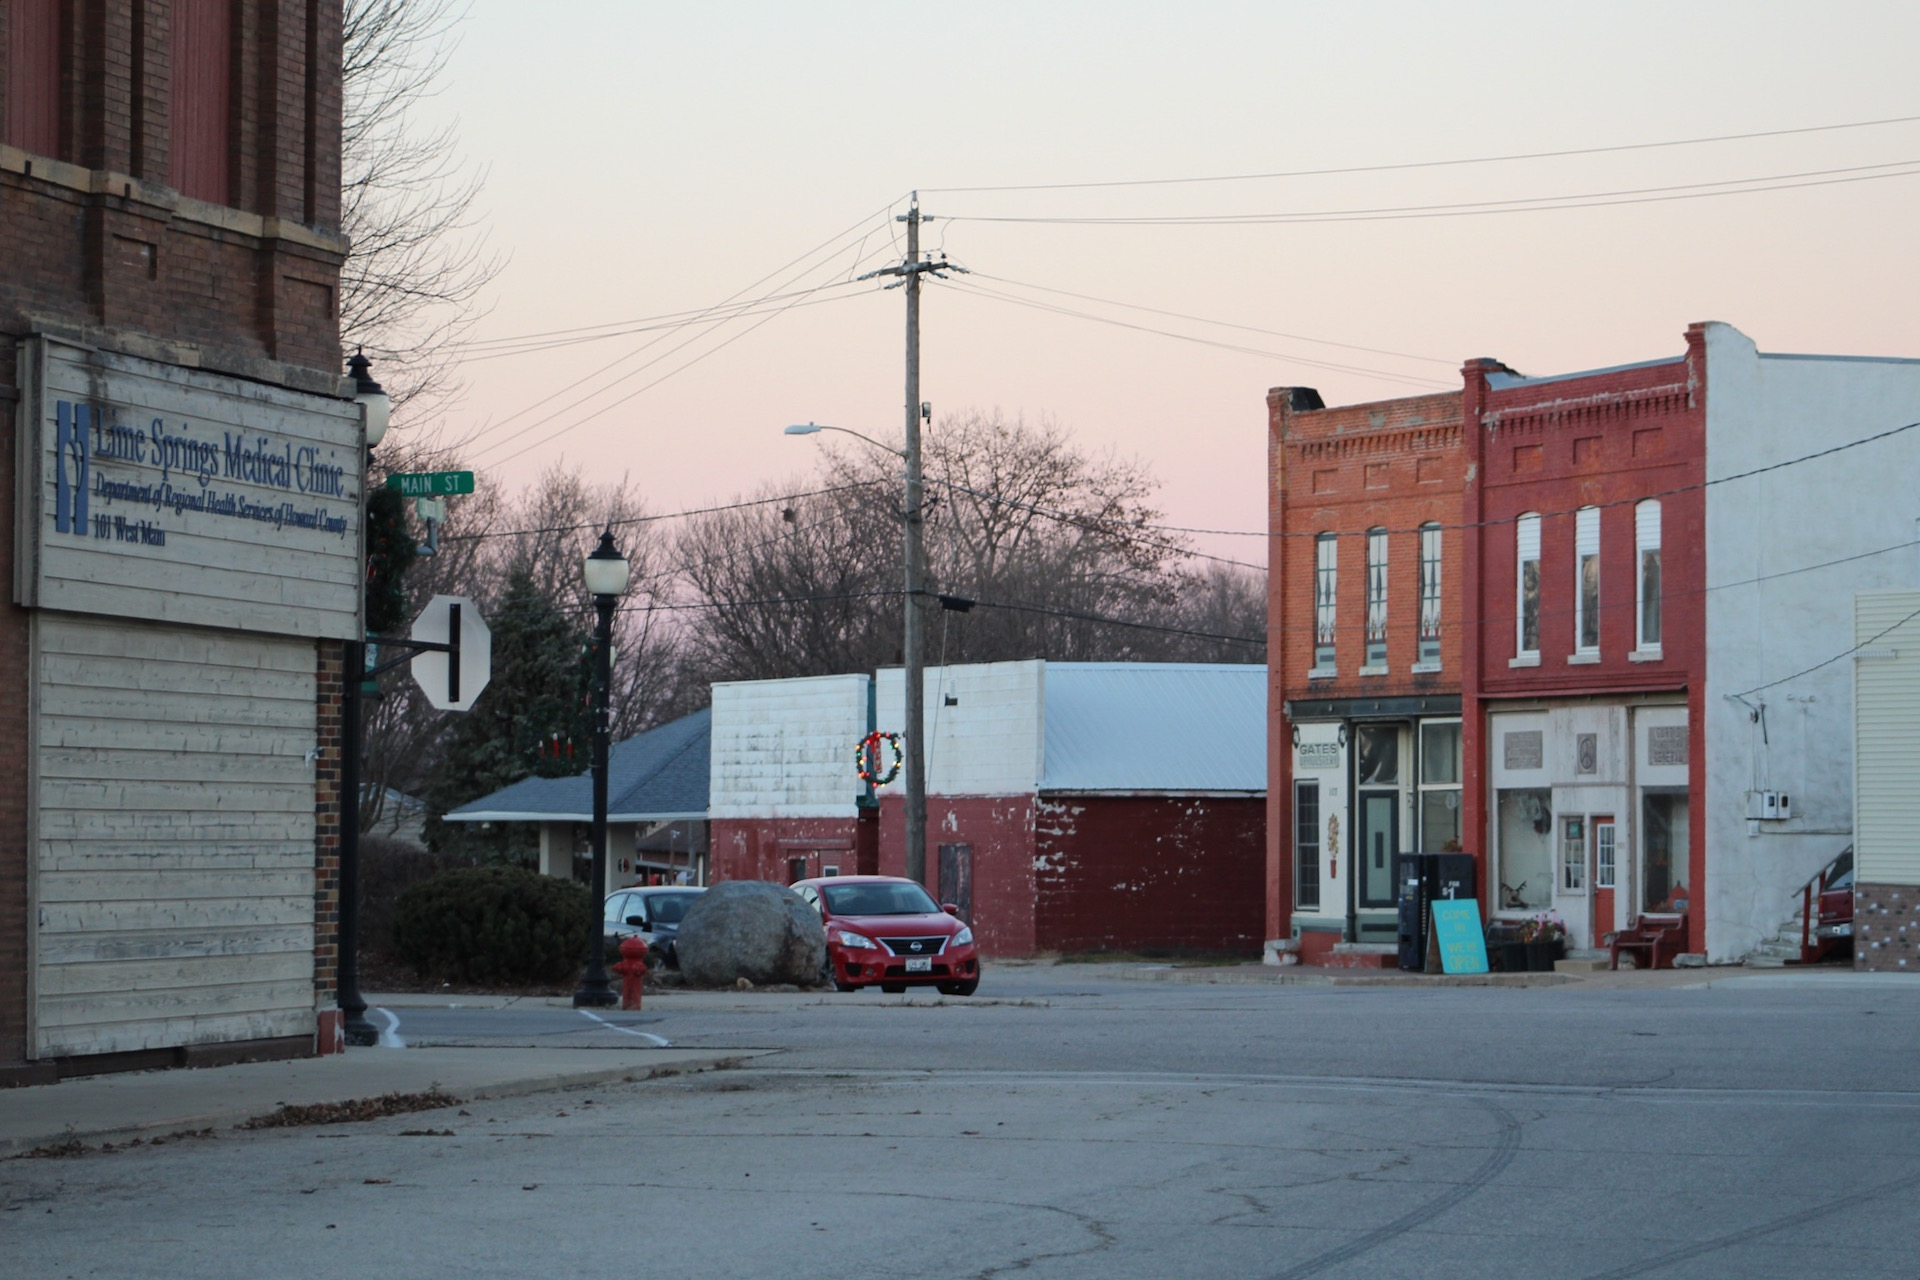 A street scene in Lime Springs, Iowa. Photo by Sabrina Johnkins.